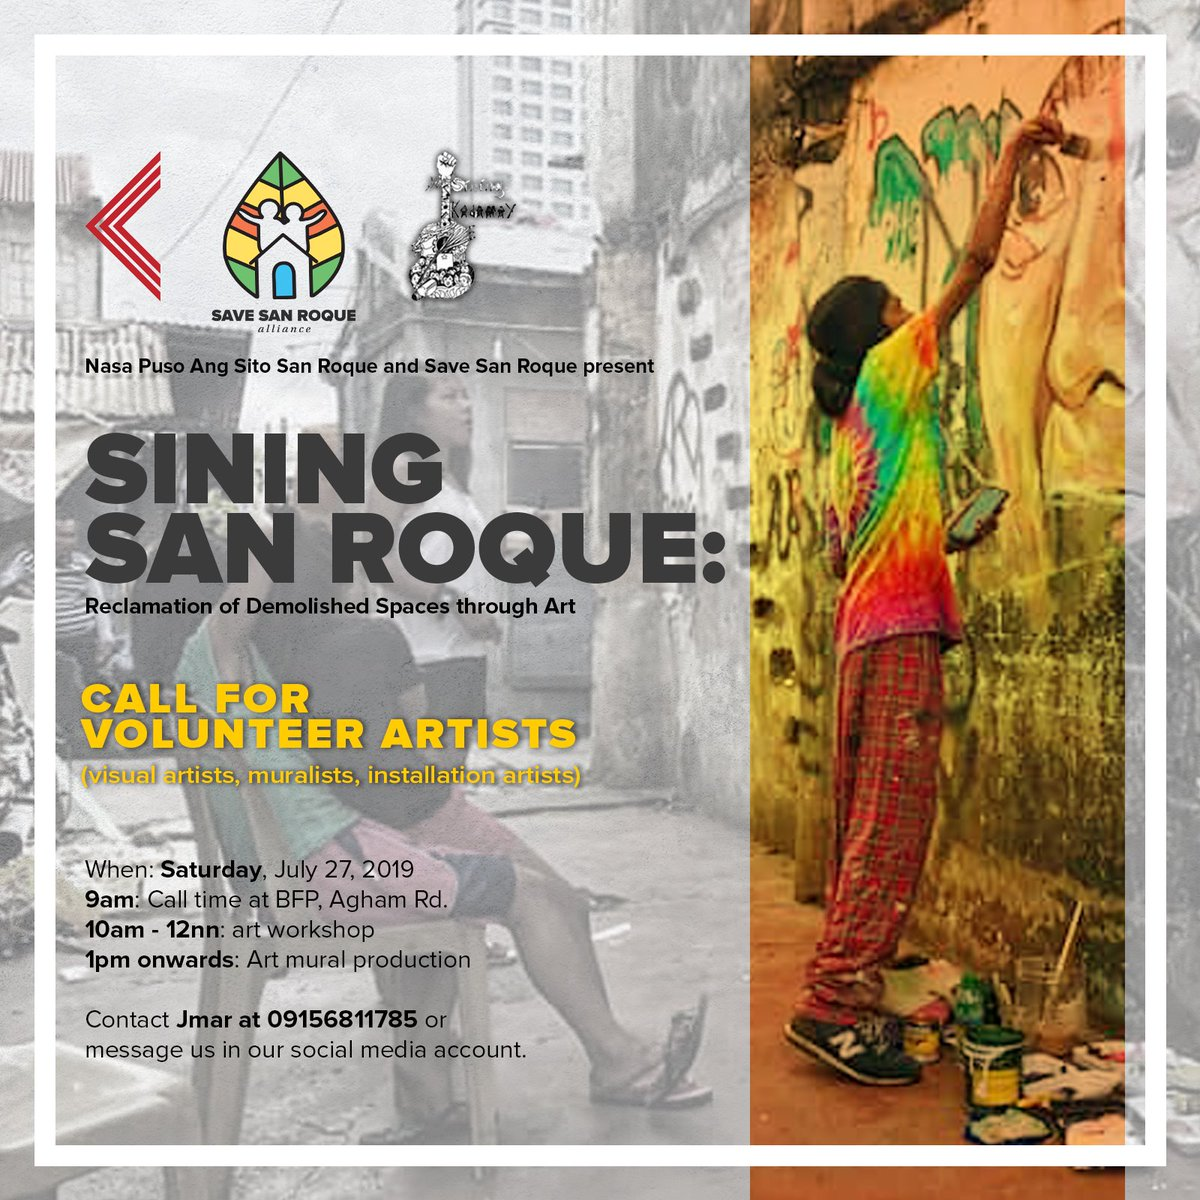 Save San Roque on Twitter: